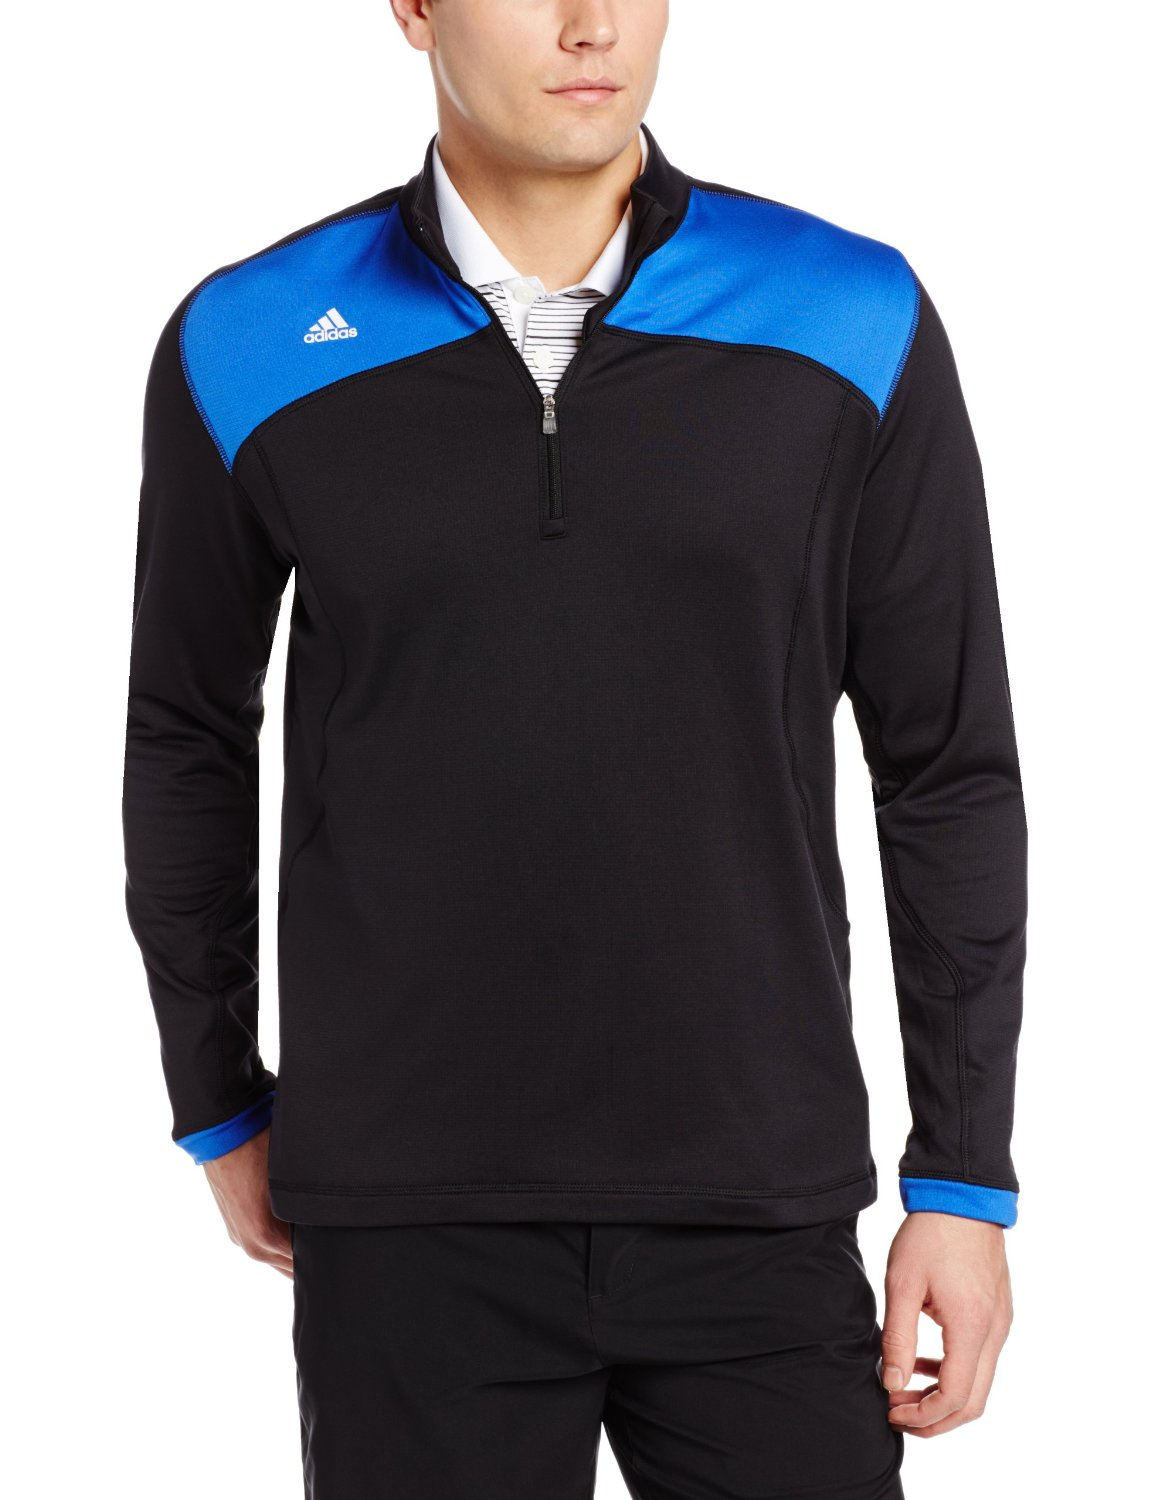 Mens Adidas Climawarm+ Half Zip Golf Pullovers